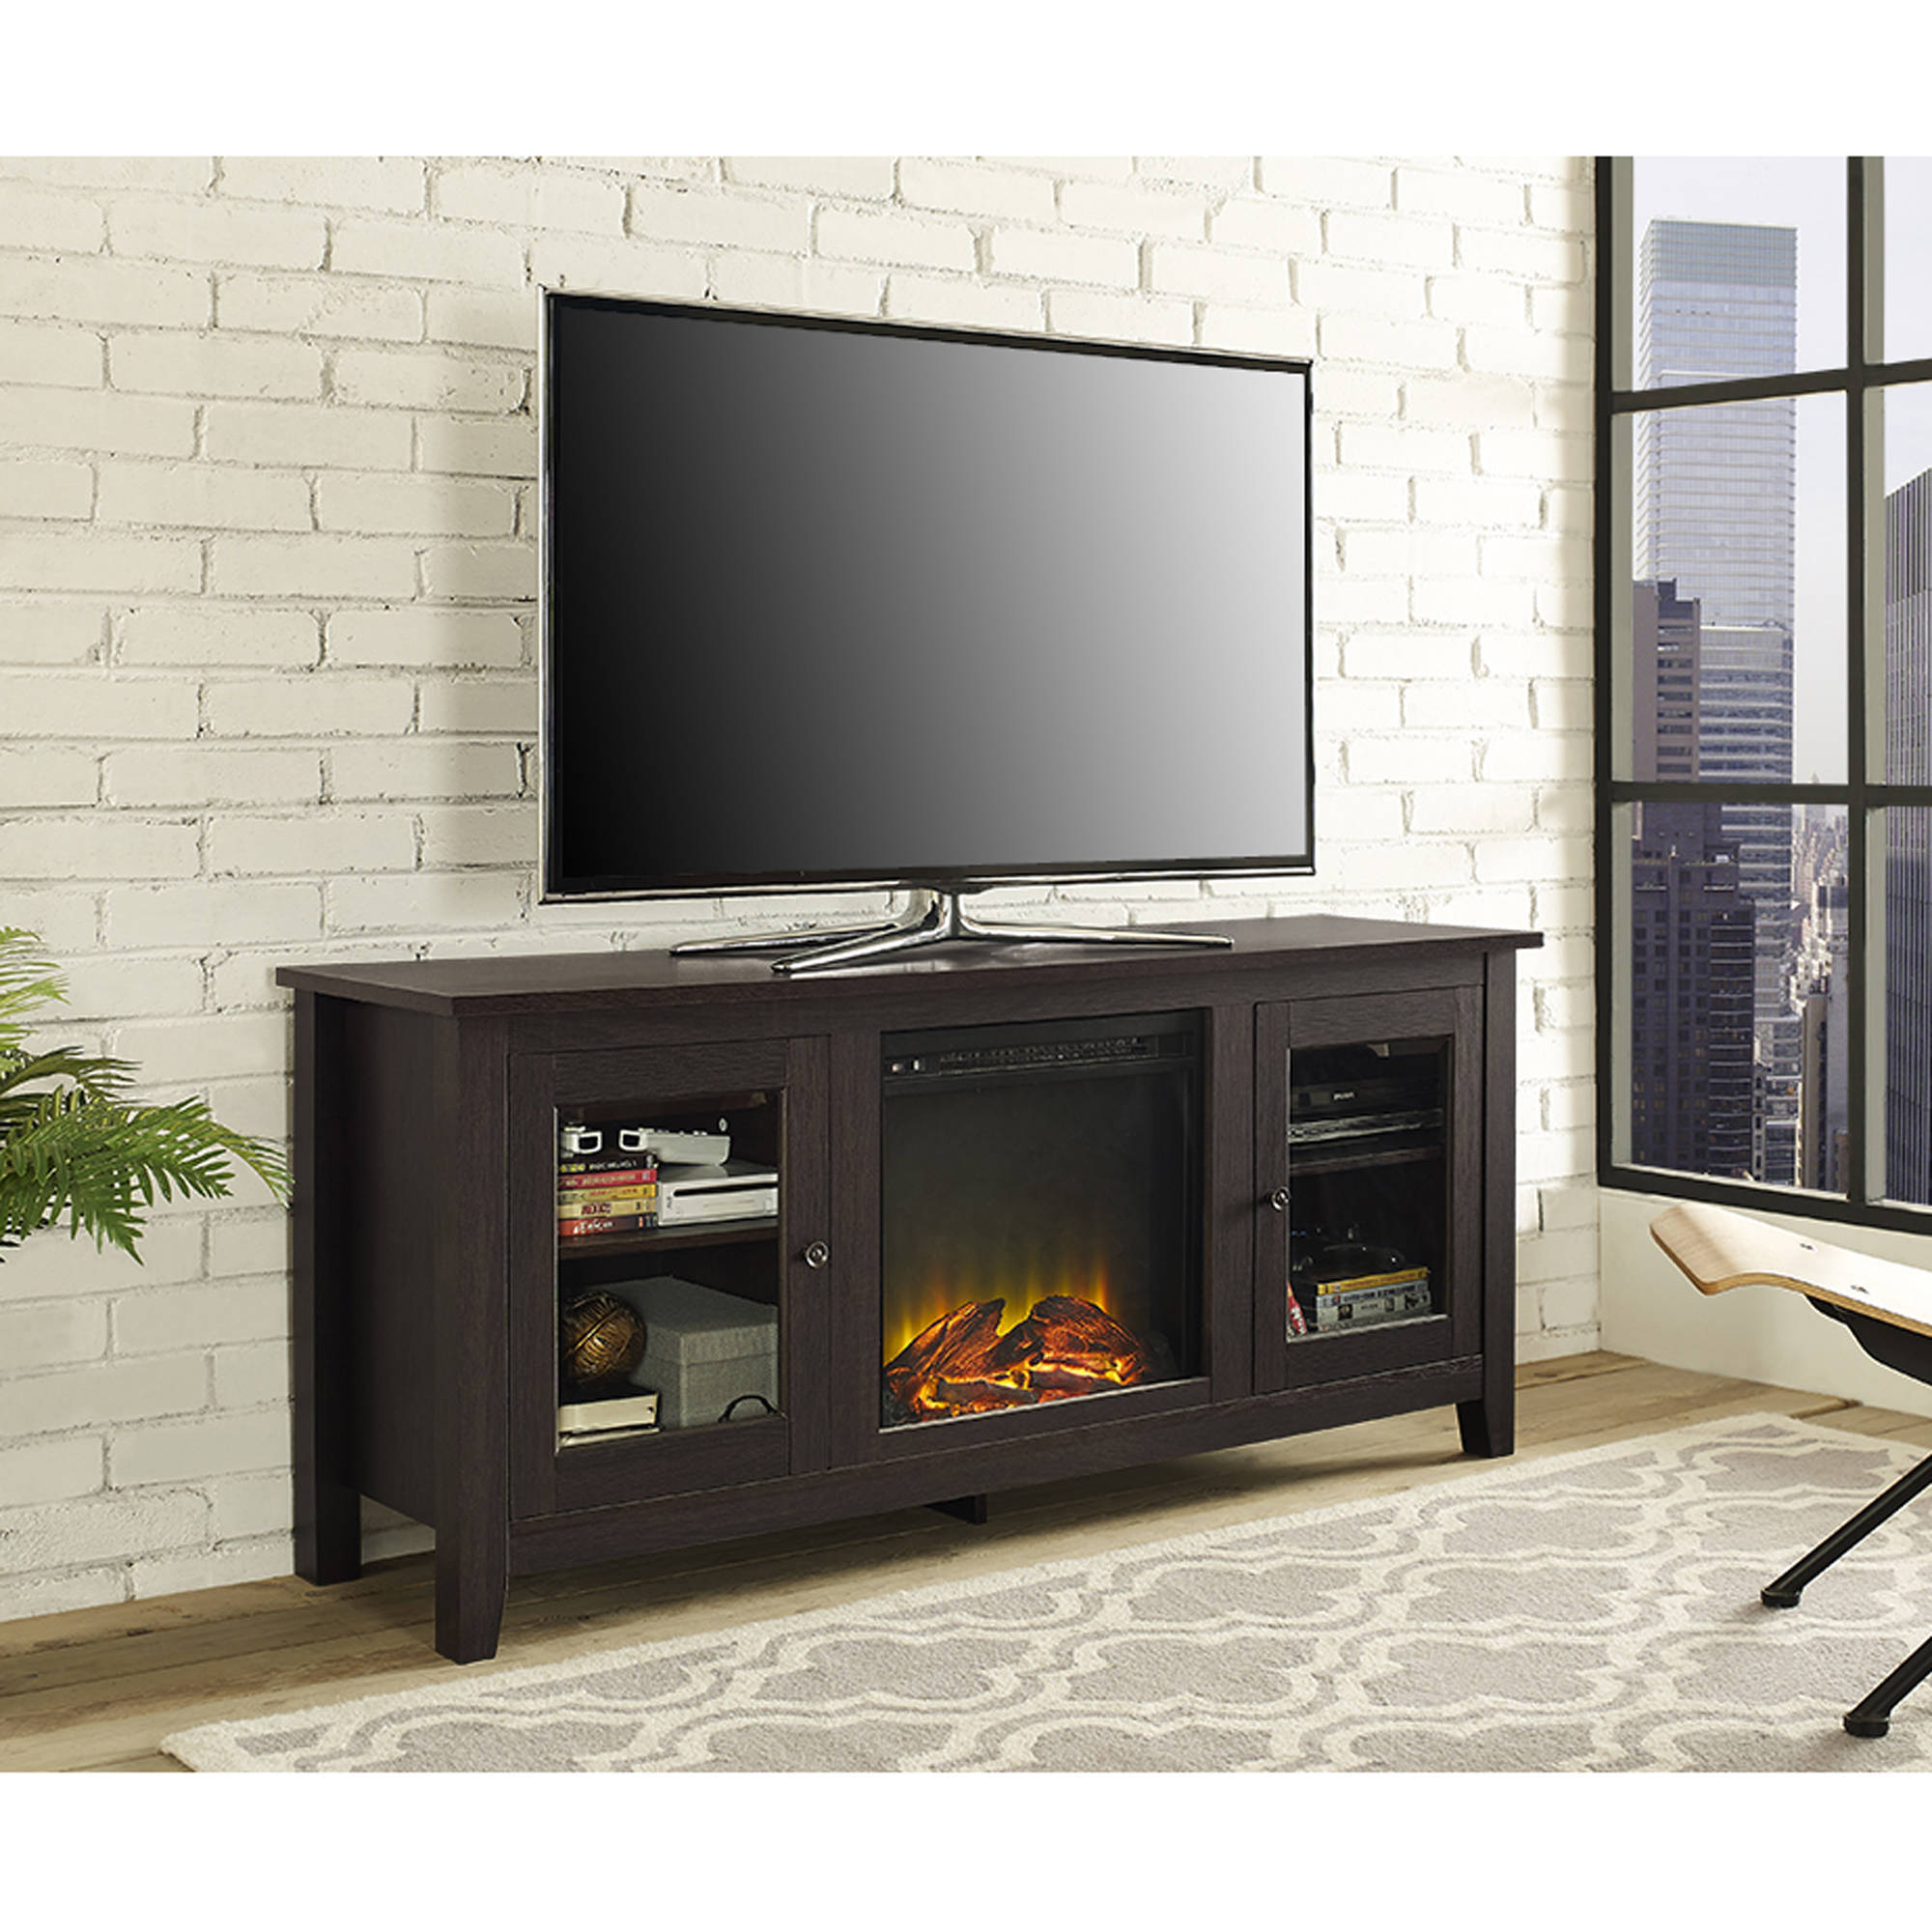 Popular Tv Stands & Entertainment Centers – Walmart With Wooden Tv Stands And Cabinets (Gallery 7 of 20)